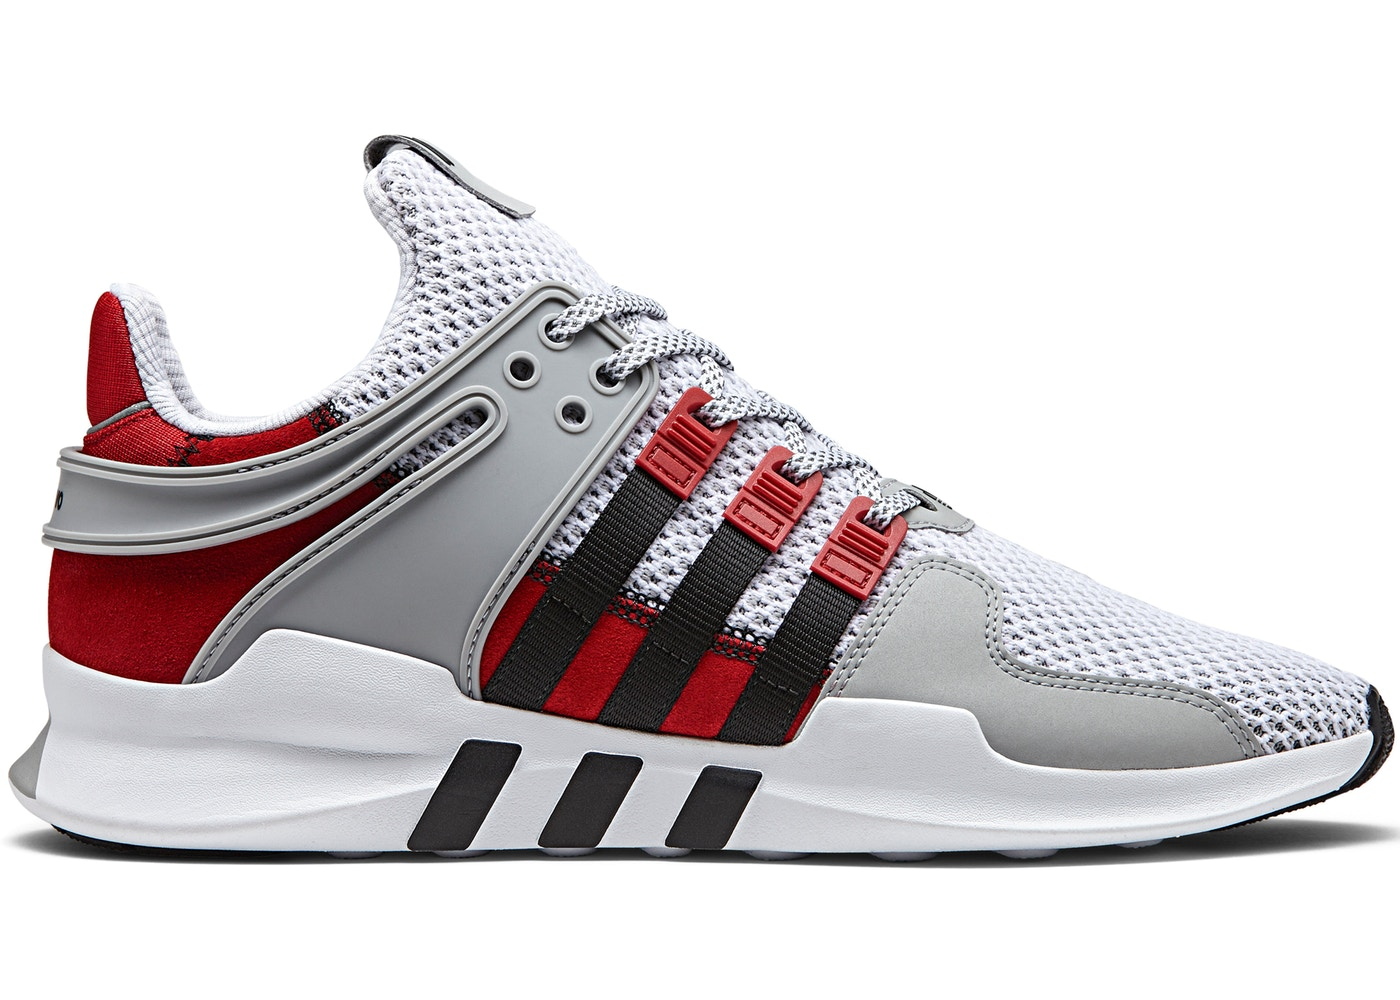 アディダス ADIDAS スニーカー 【 EQT SUPPORT ADV OVERKILL COAT OF ARMS GREY BLACK RED 】 メンズ